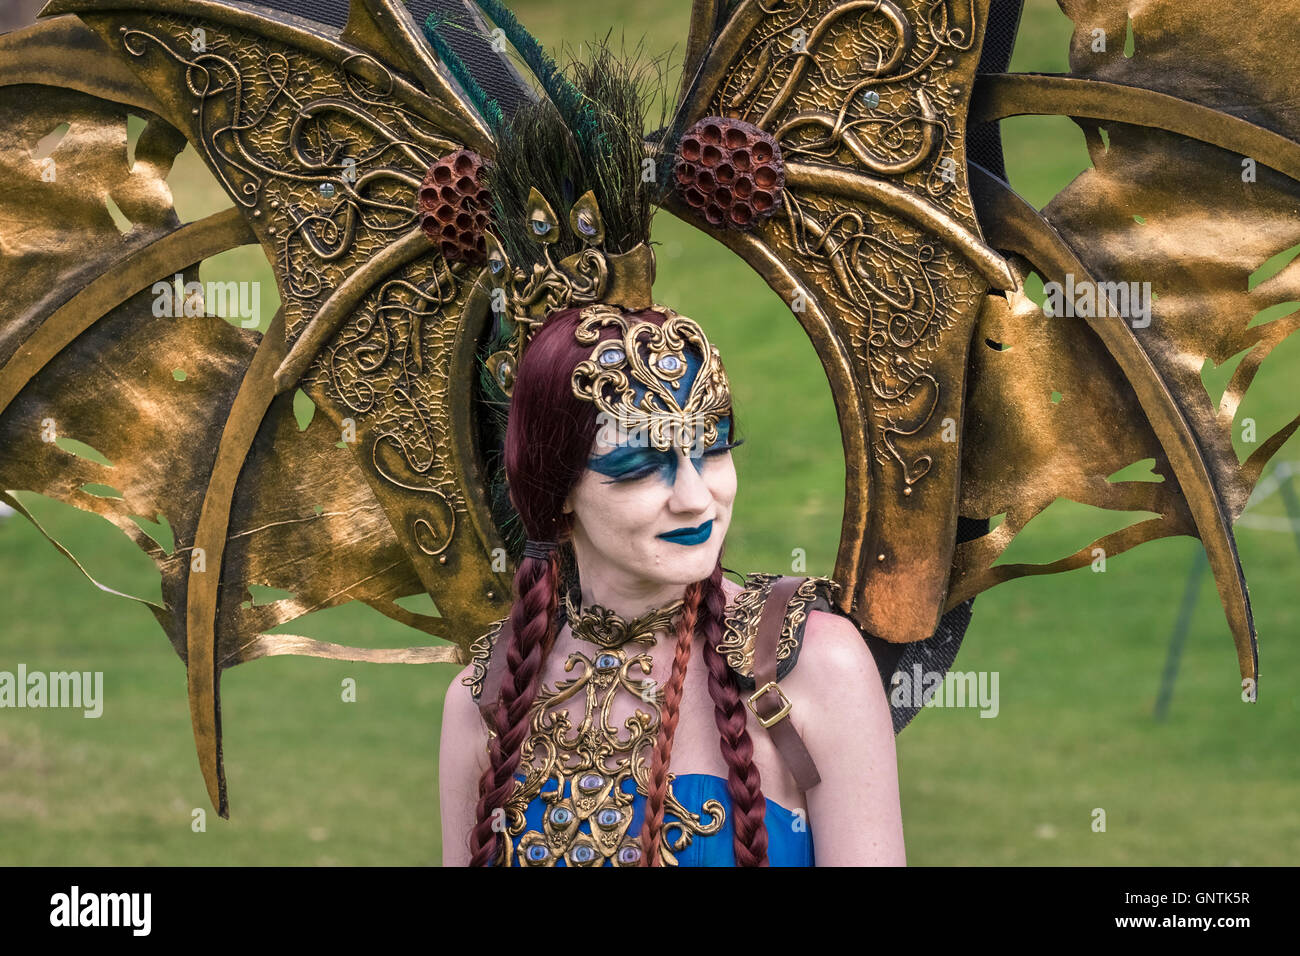 Participant with elaborate headdress and costume at the 2016 Steampunk Festival, City of Lincoln, UK - Stock Image